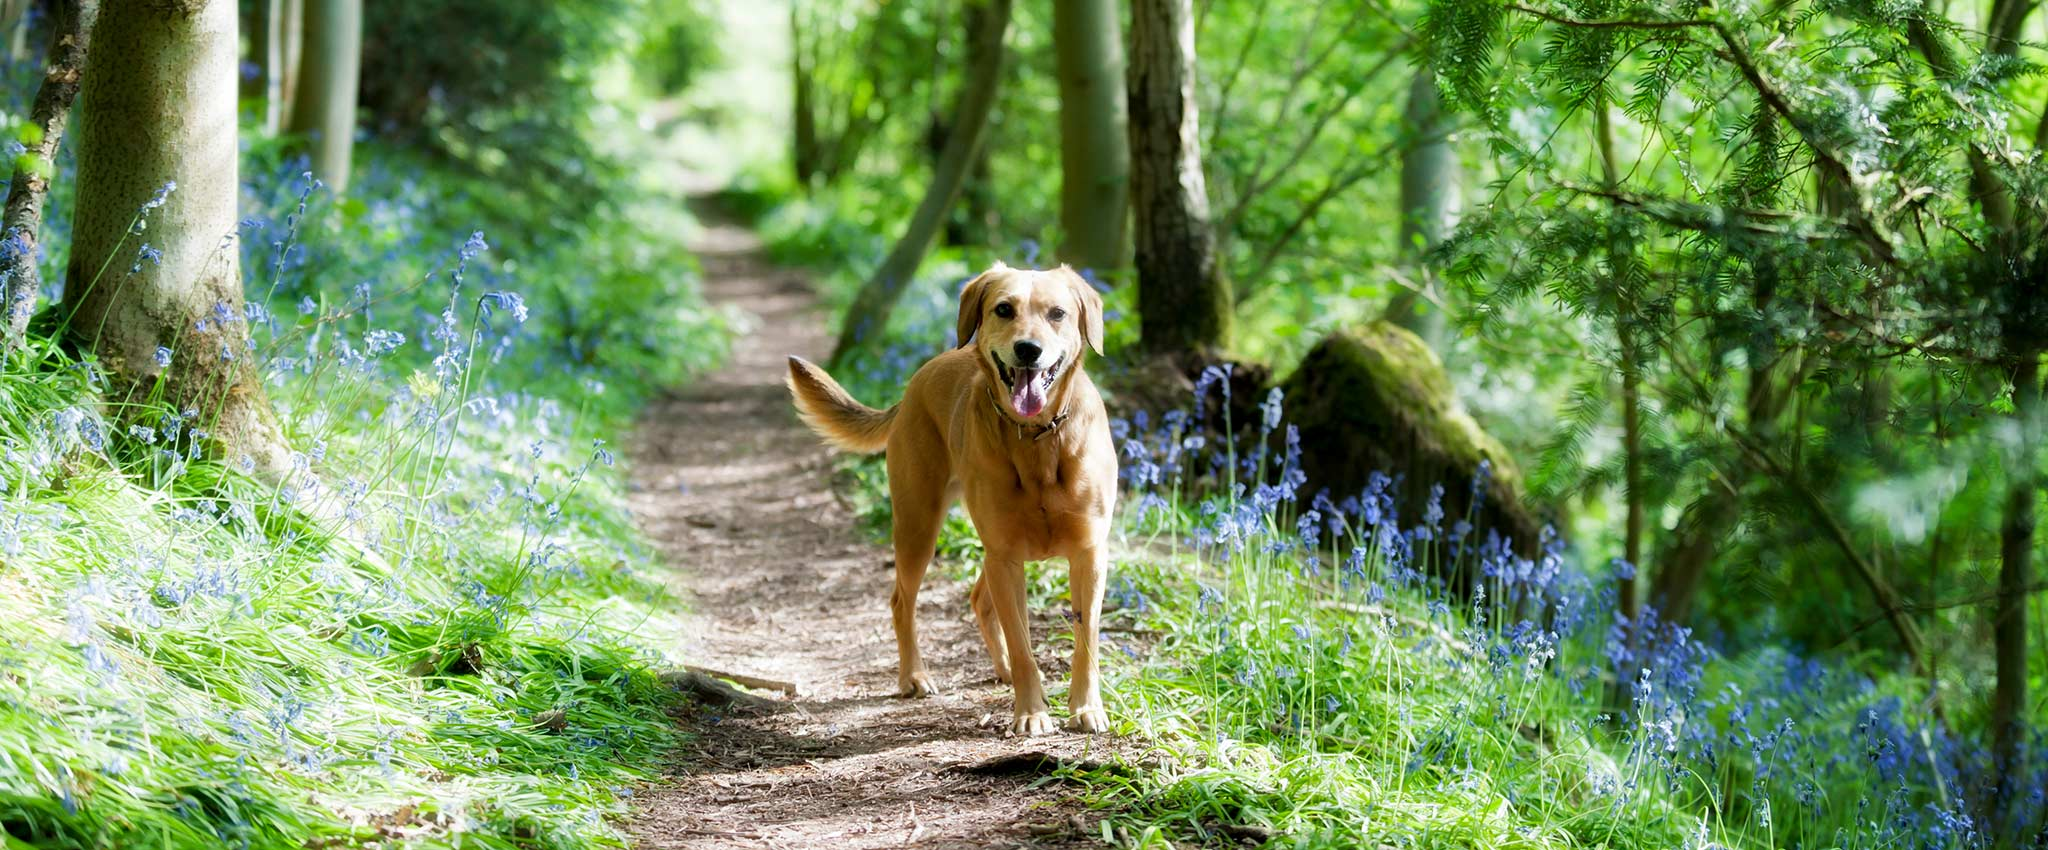 A dog on a running path